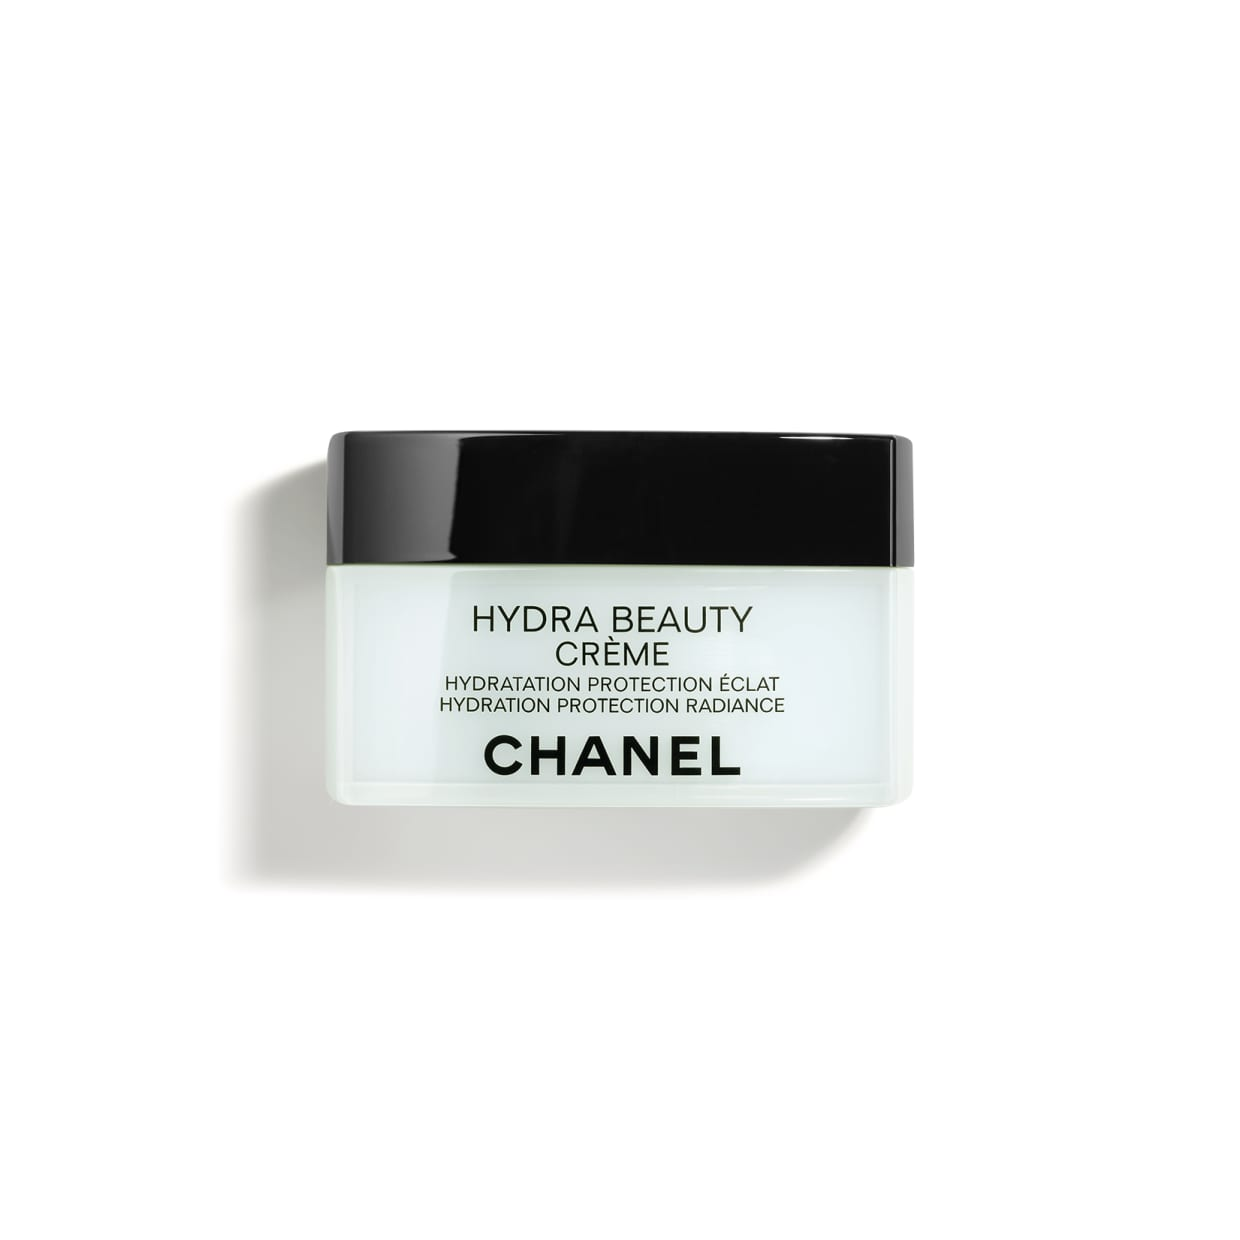 chanel hydra beauty creme